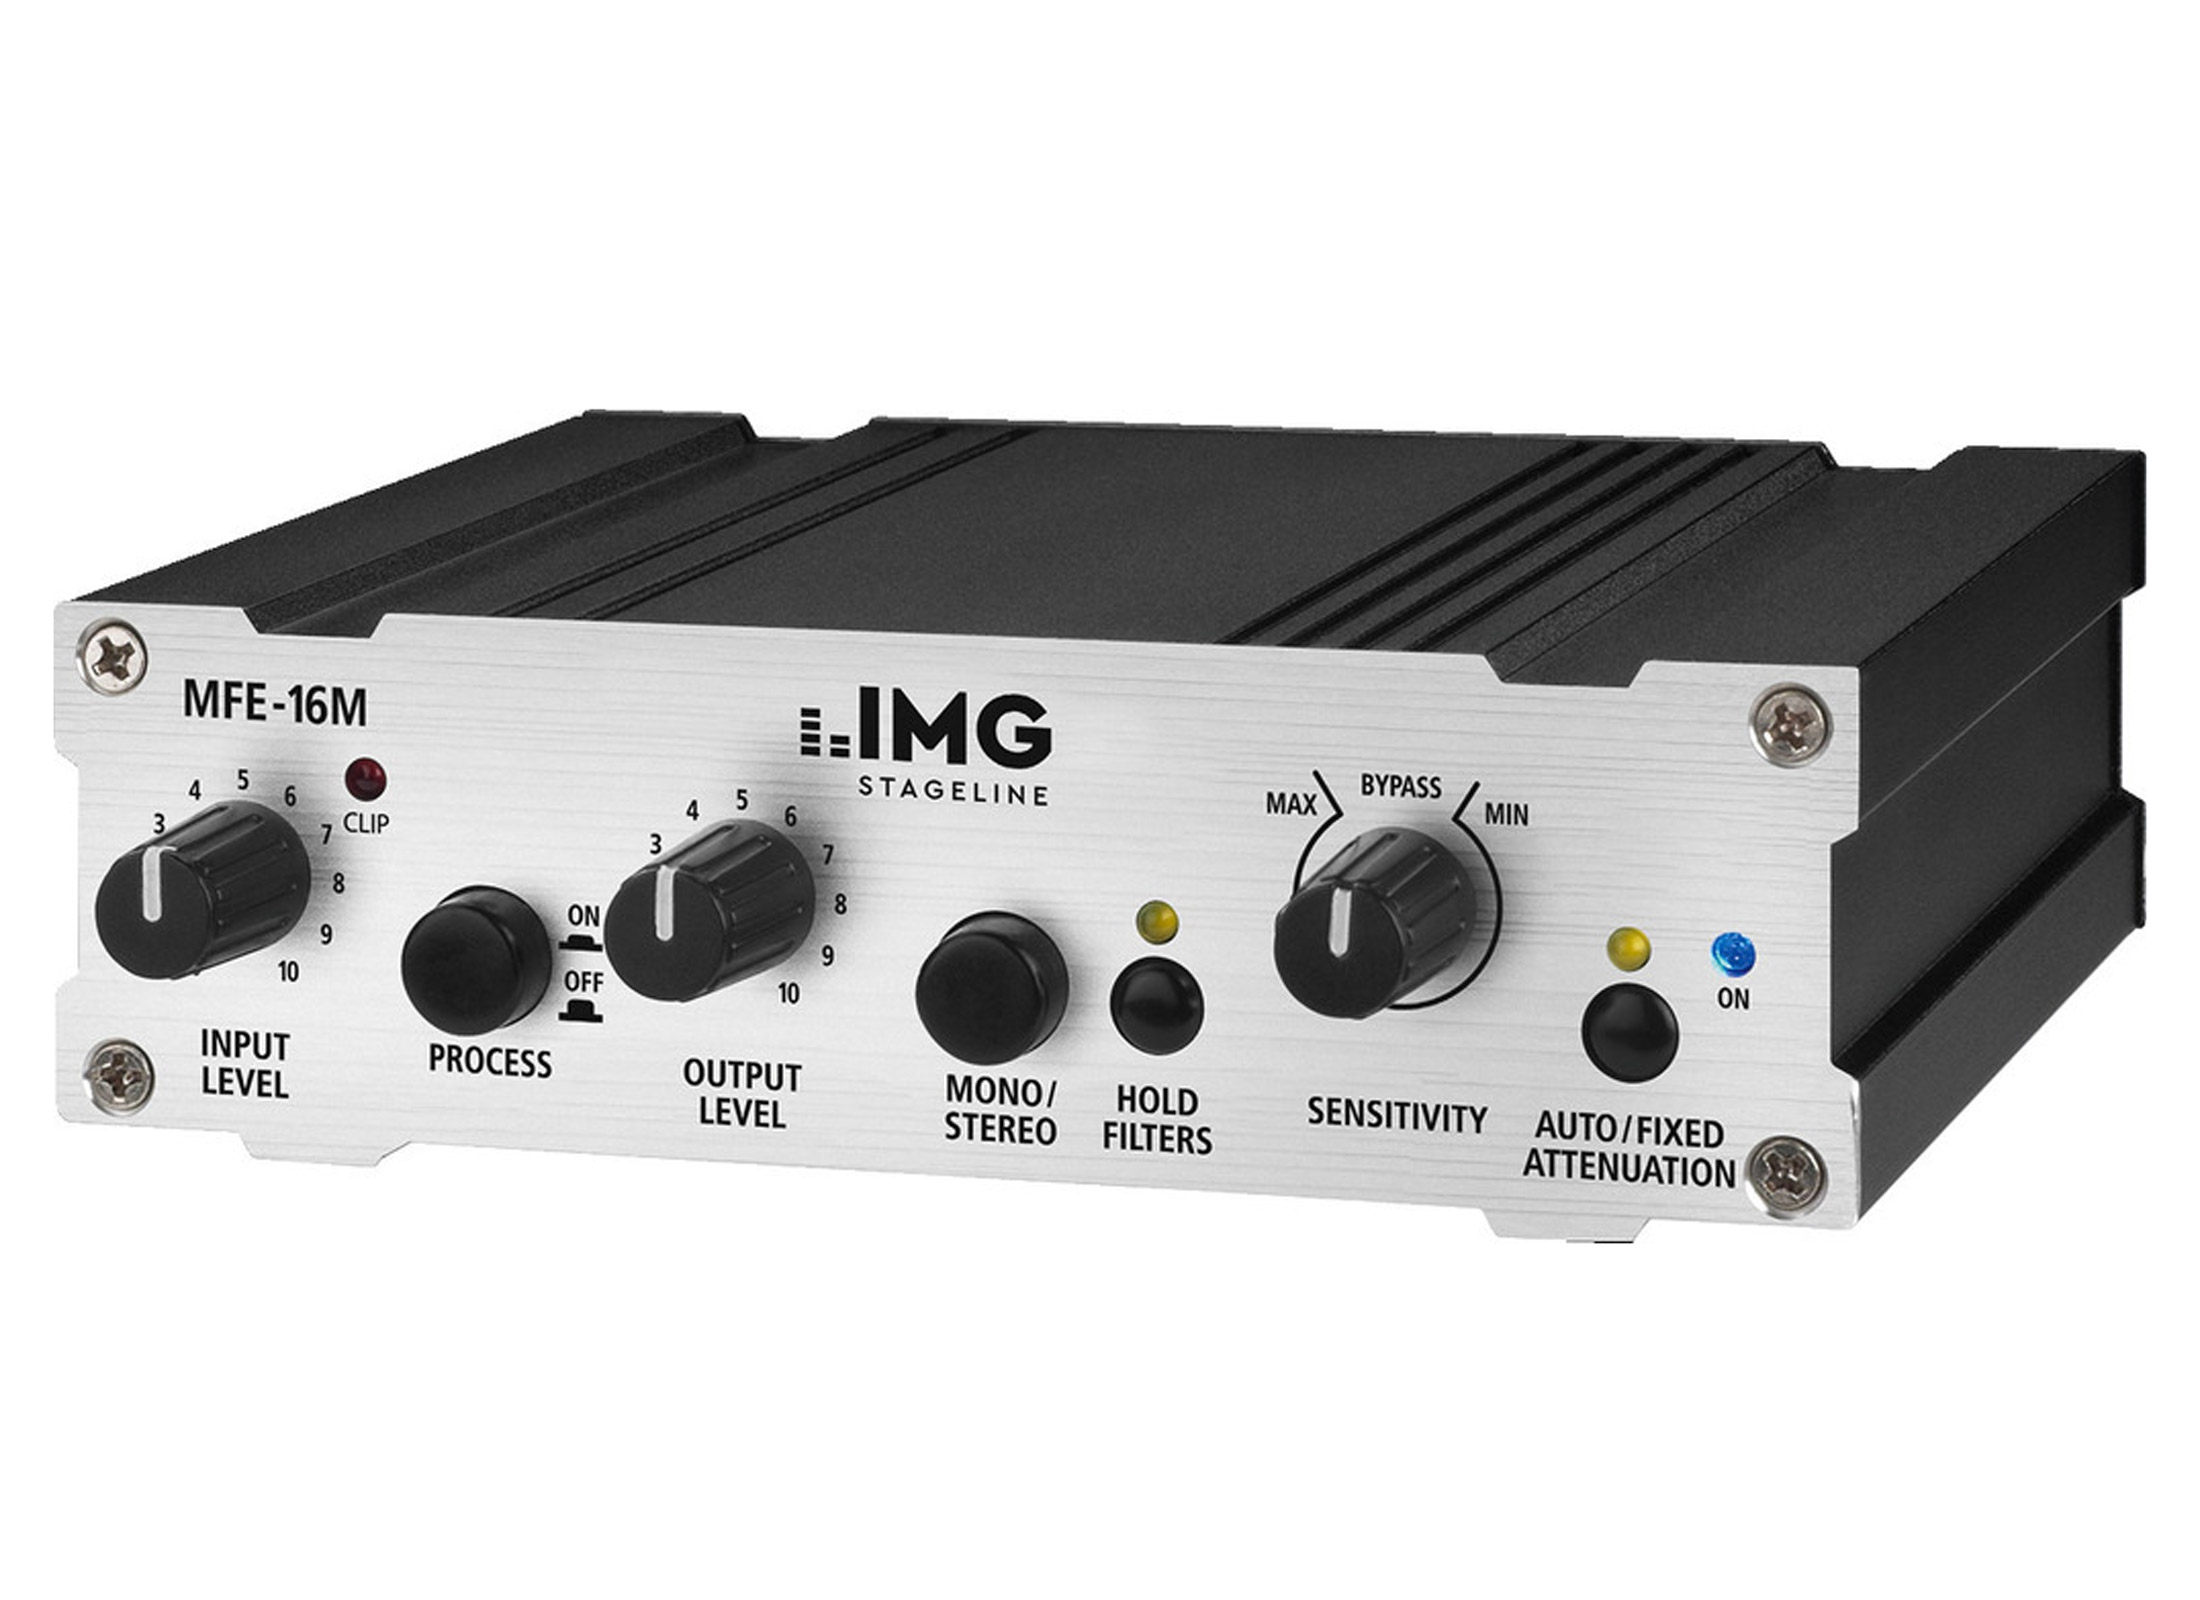 IMG STAGELINE MFE-16M Feedback Controller, 20-Bit Converter IN/OUT: 2x  Jack, incl  power supply